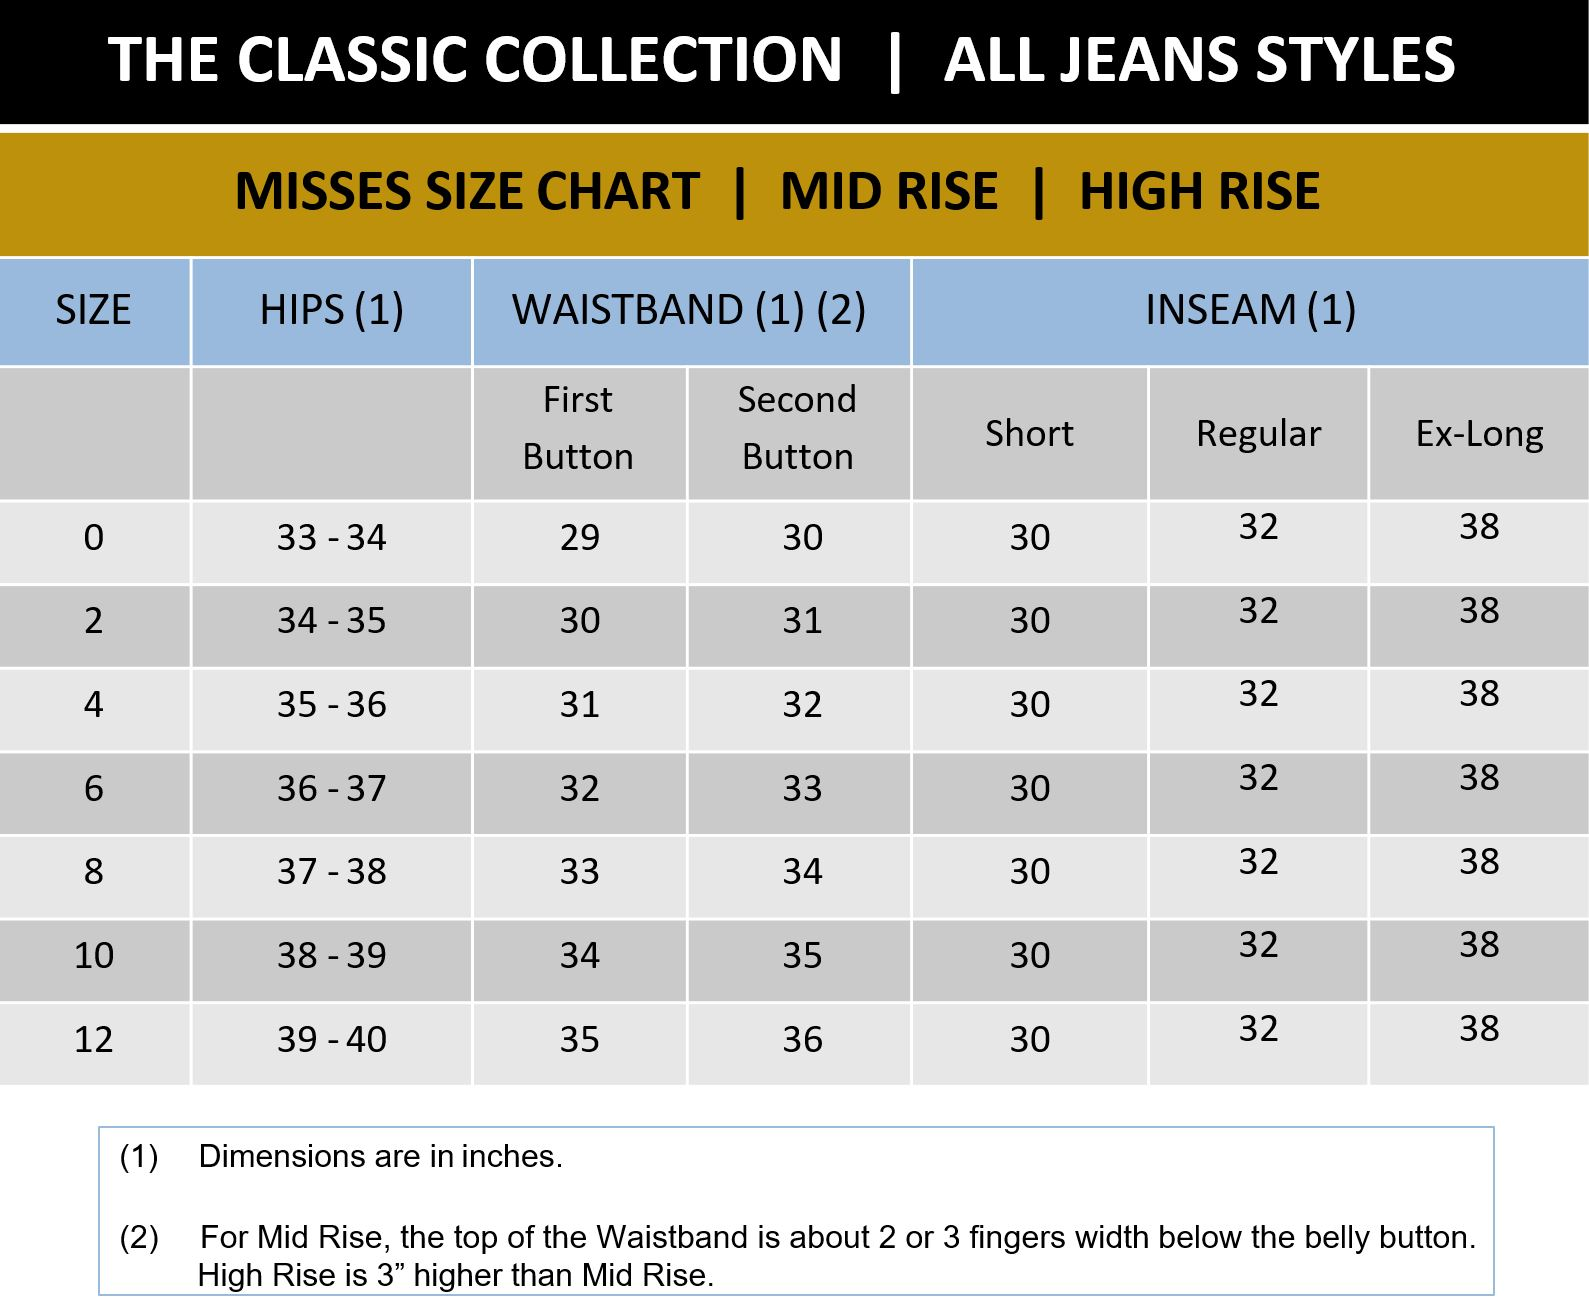 classic-collection.misses-size-charts.21april2020.jpg